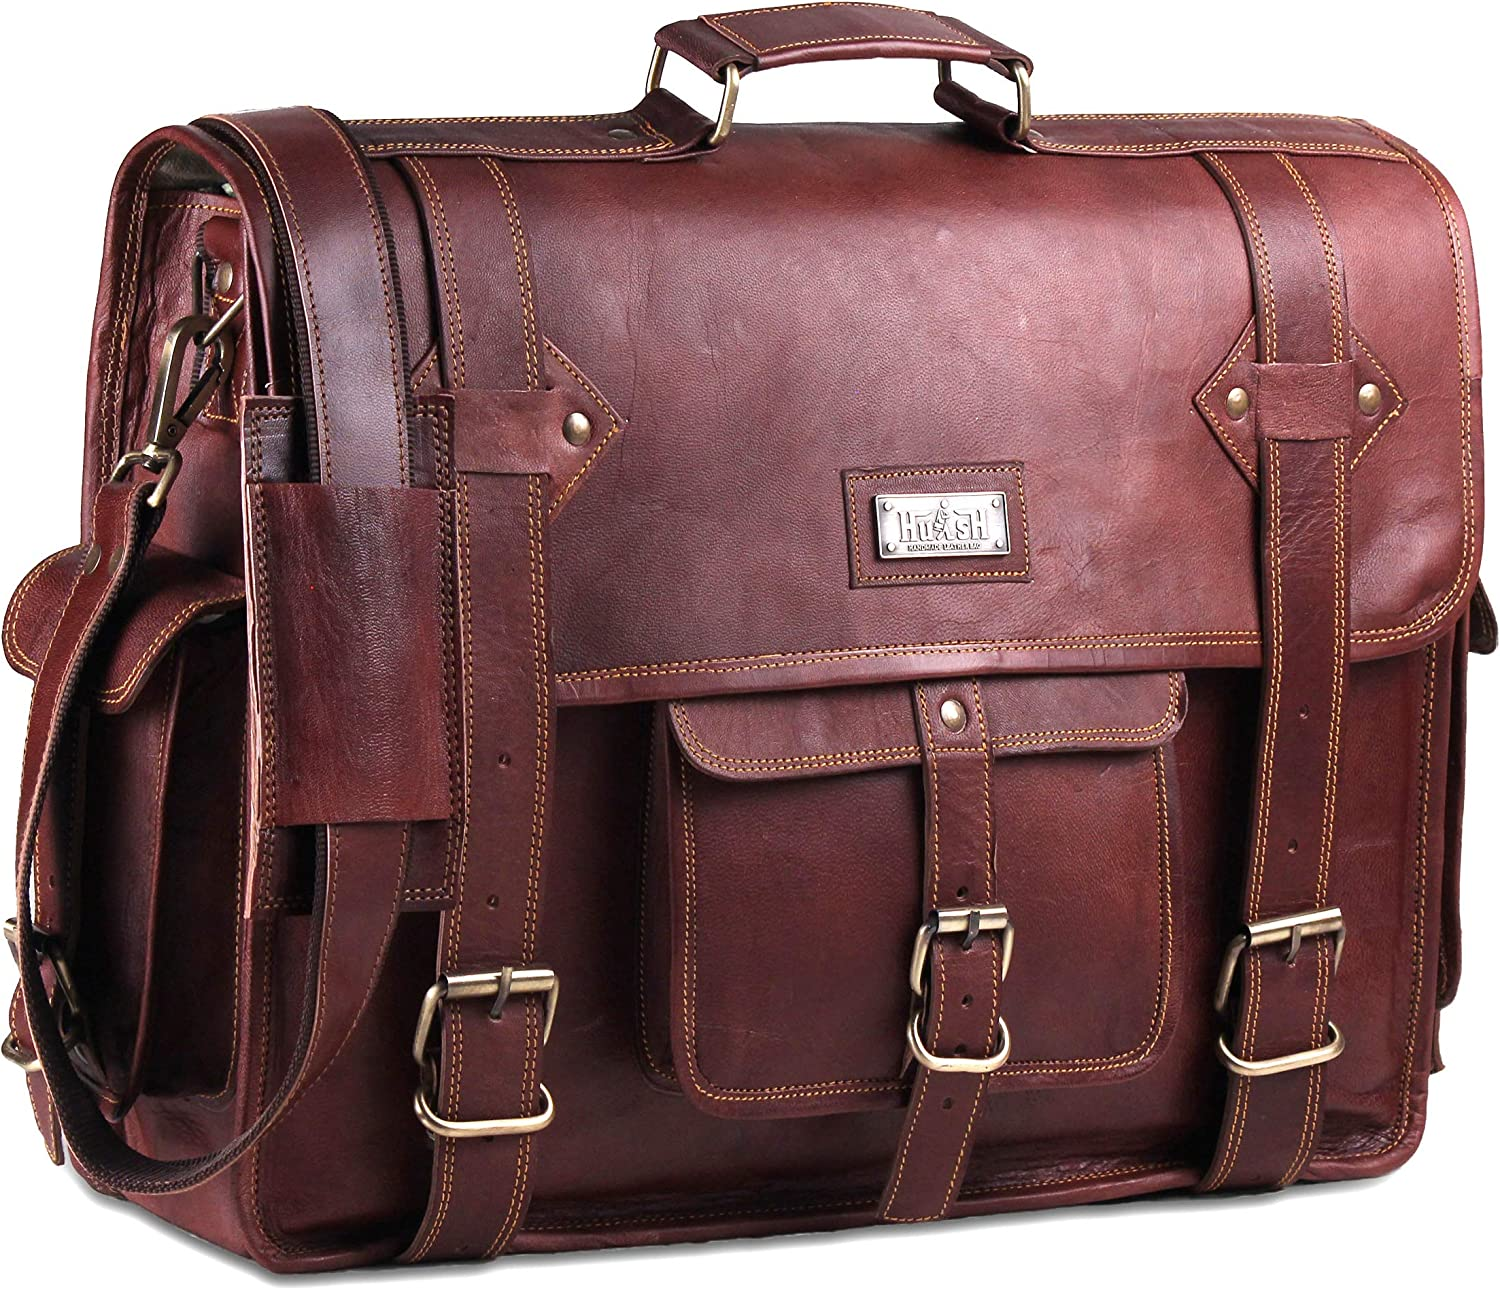 Hulsh Leather Messenger Bag for Men – Vintage Laptop Bag Leather Satchel for Men - 18 inches Genuine Leather Briefcase w/Padded Brown Leather Computer Bag with Rustic Look Best for Gifts and Travel